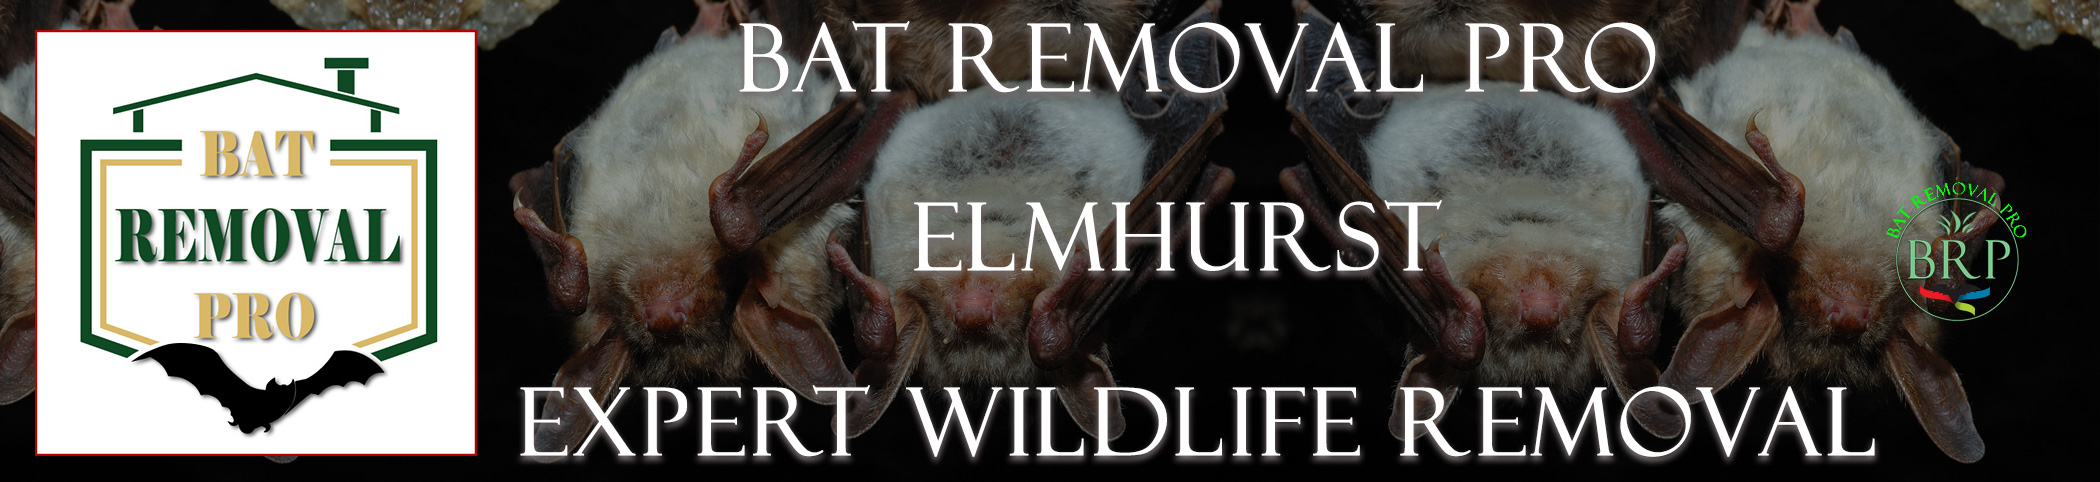 elmhurst-bat-removal-at-bat-removal-pro-header-image